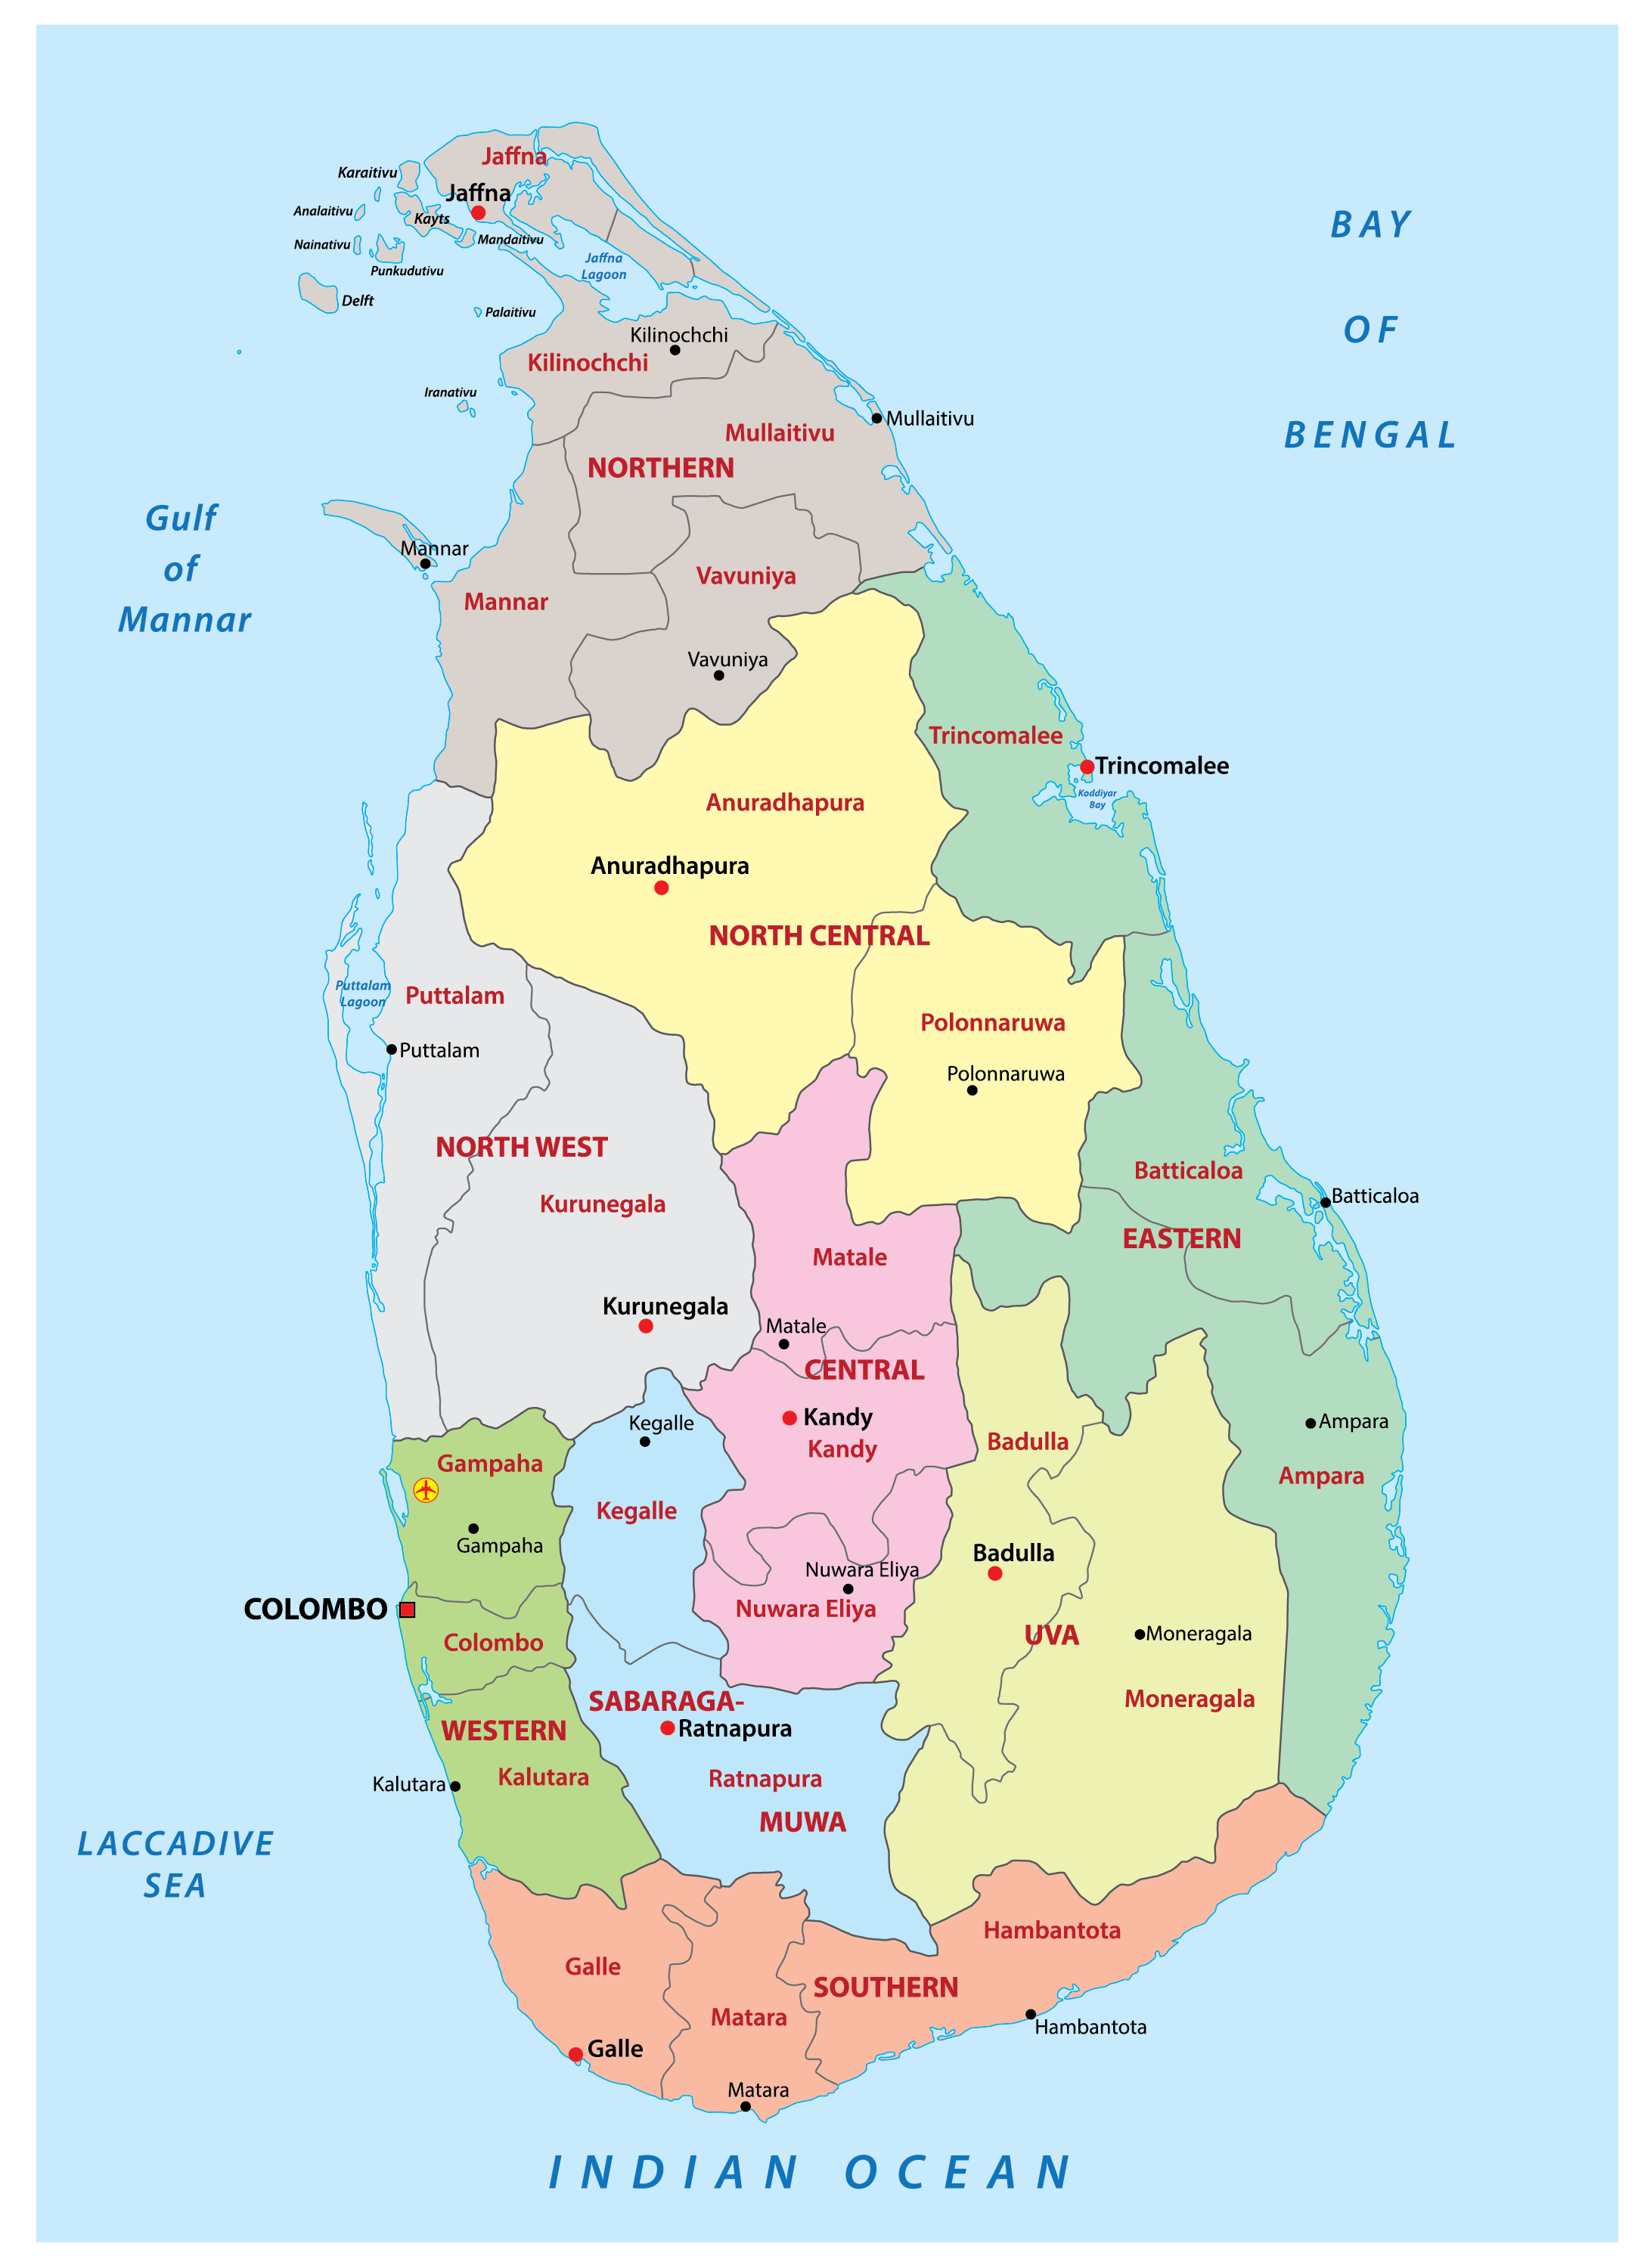 Political Map of Sri Lanka showing the 9 provinces, their capitals, and the national capital cities.